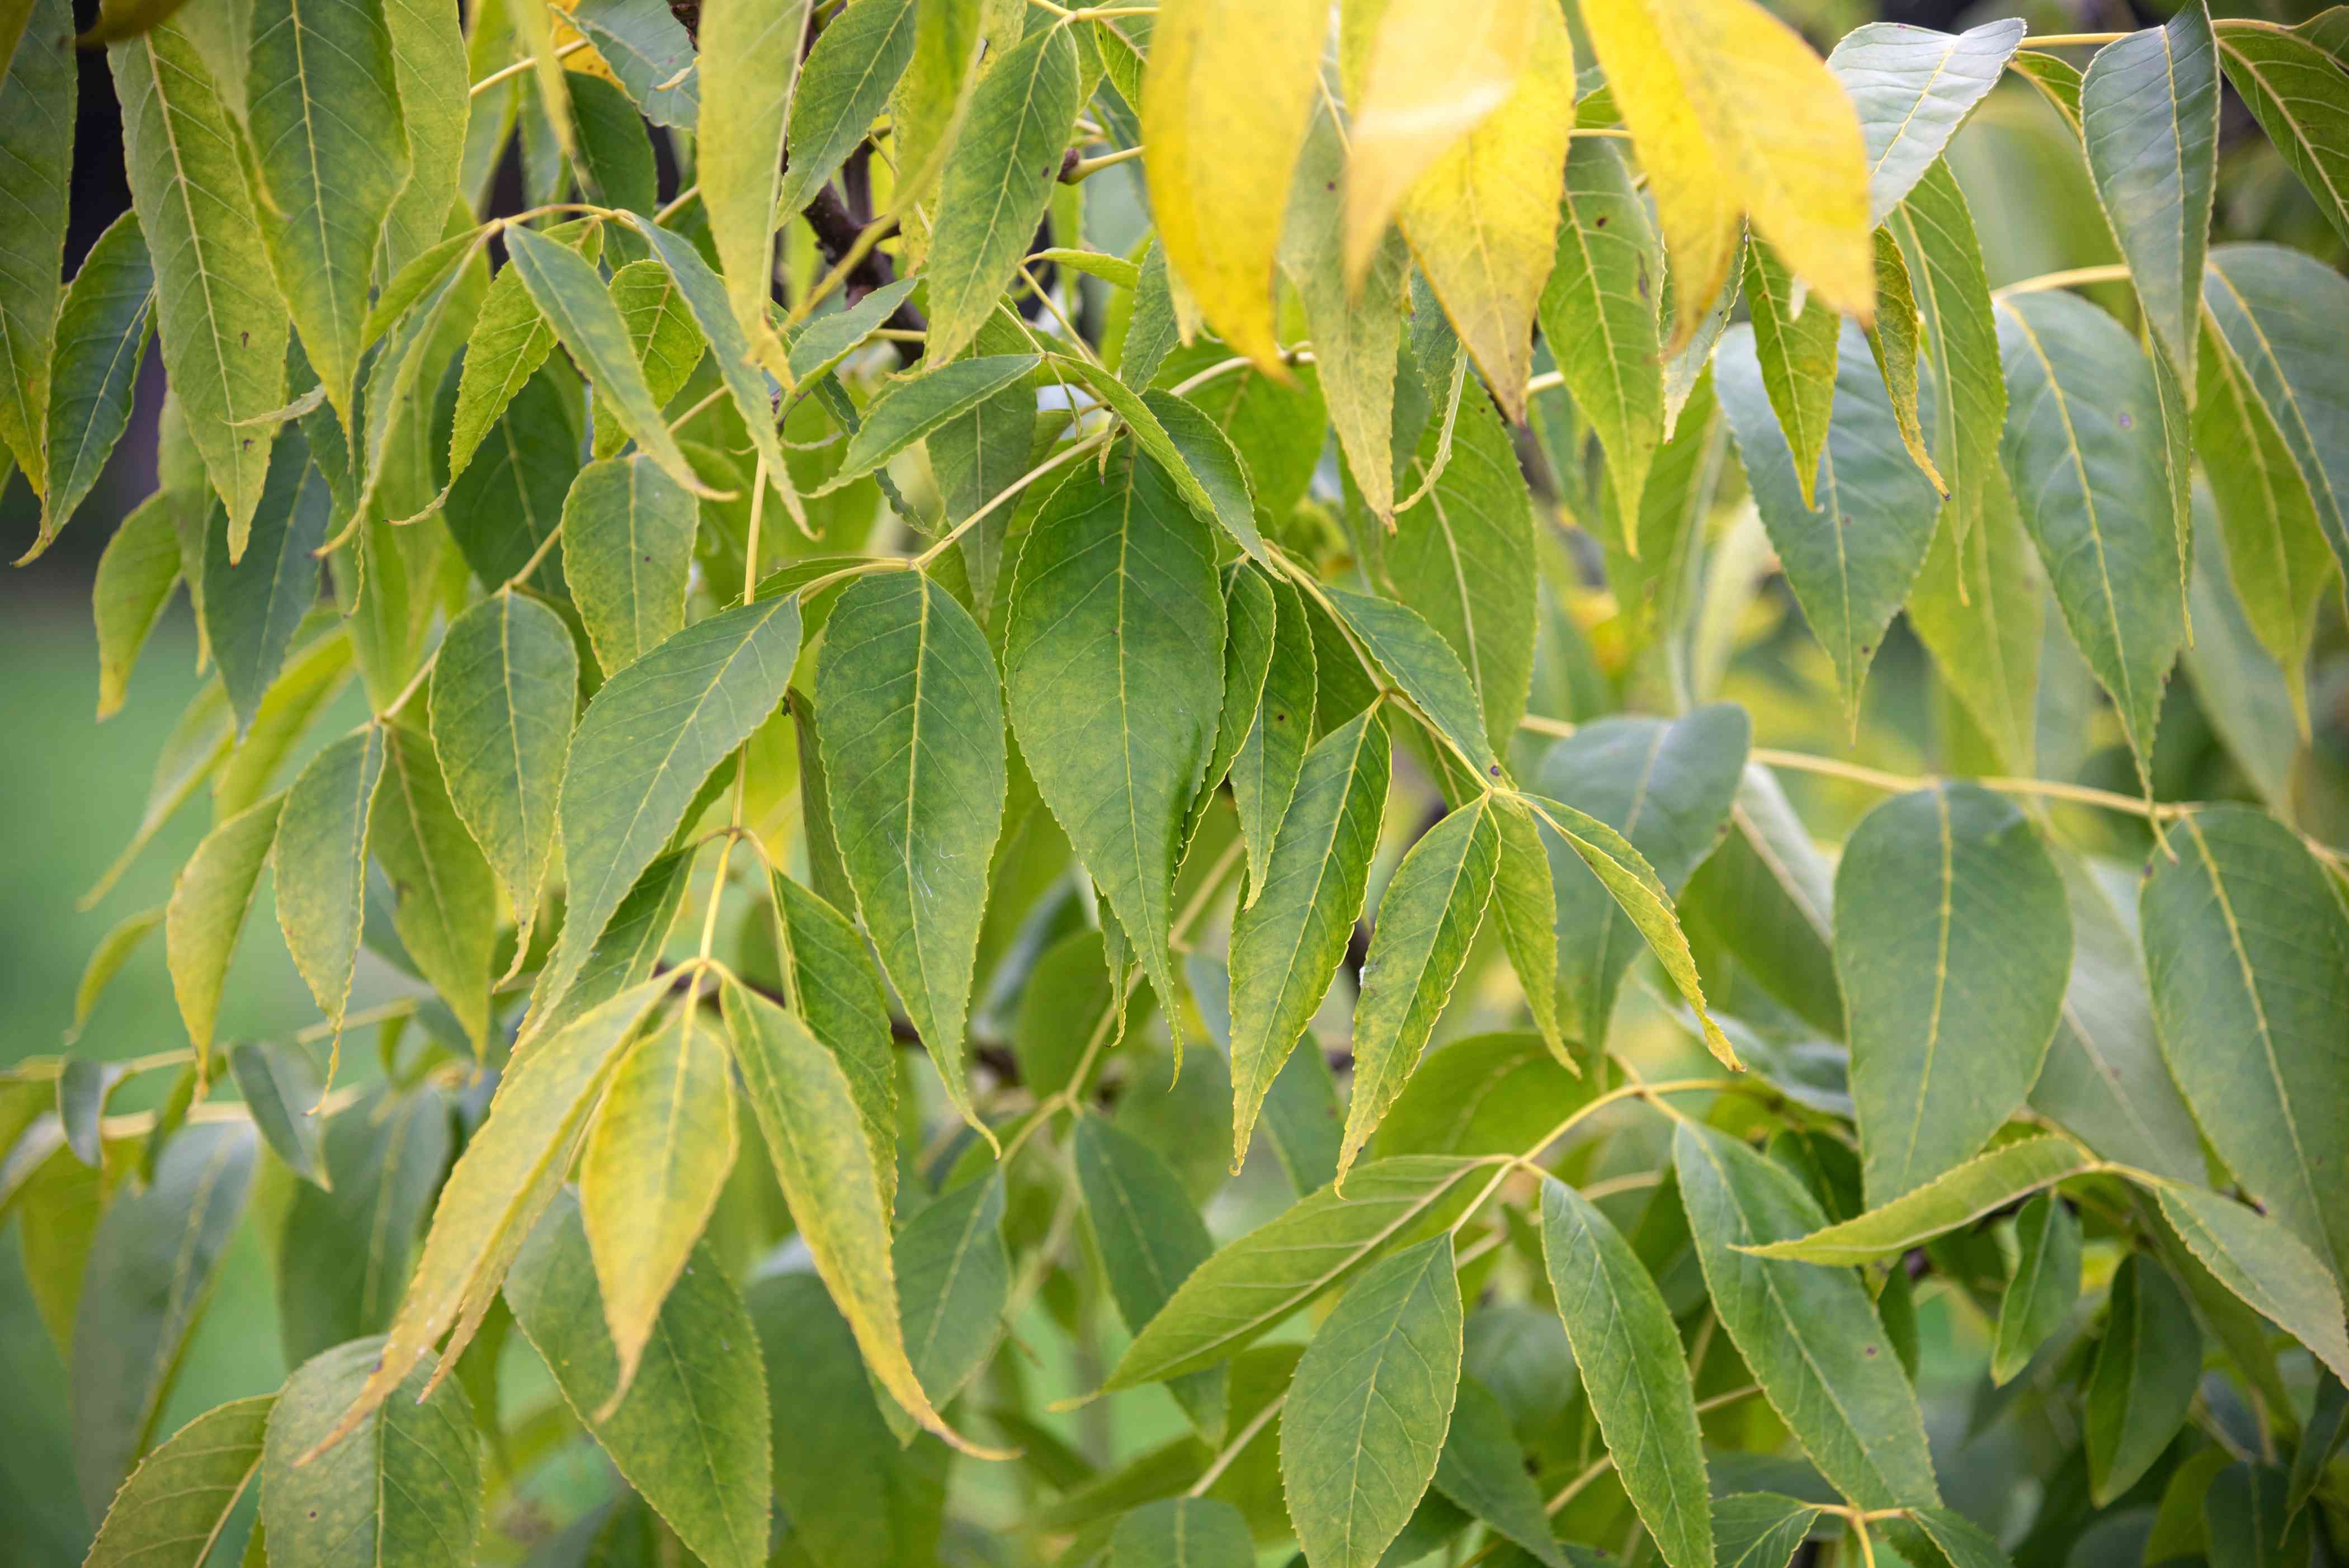 Blue ash tree with yellow and yellow-green leaves hanging from branches closeup